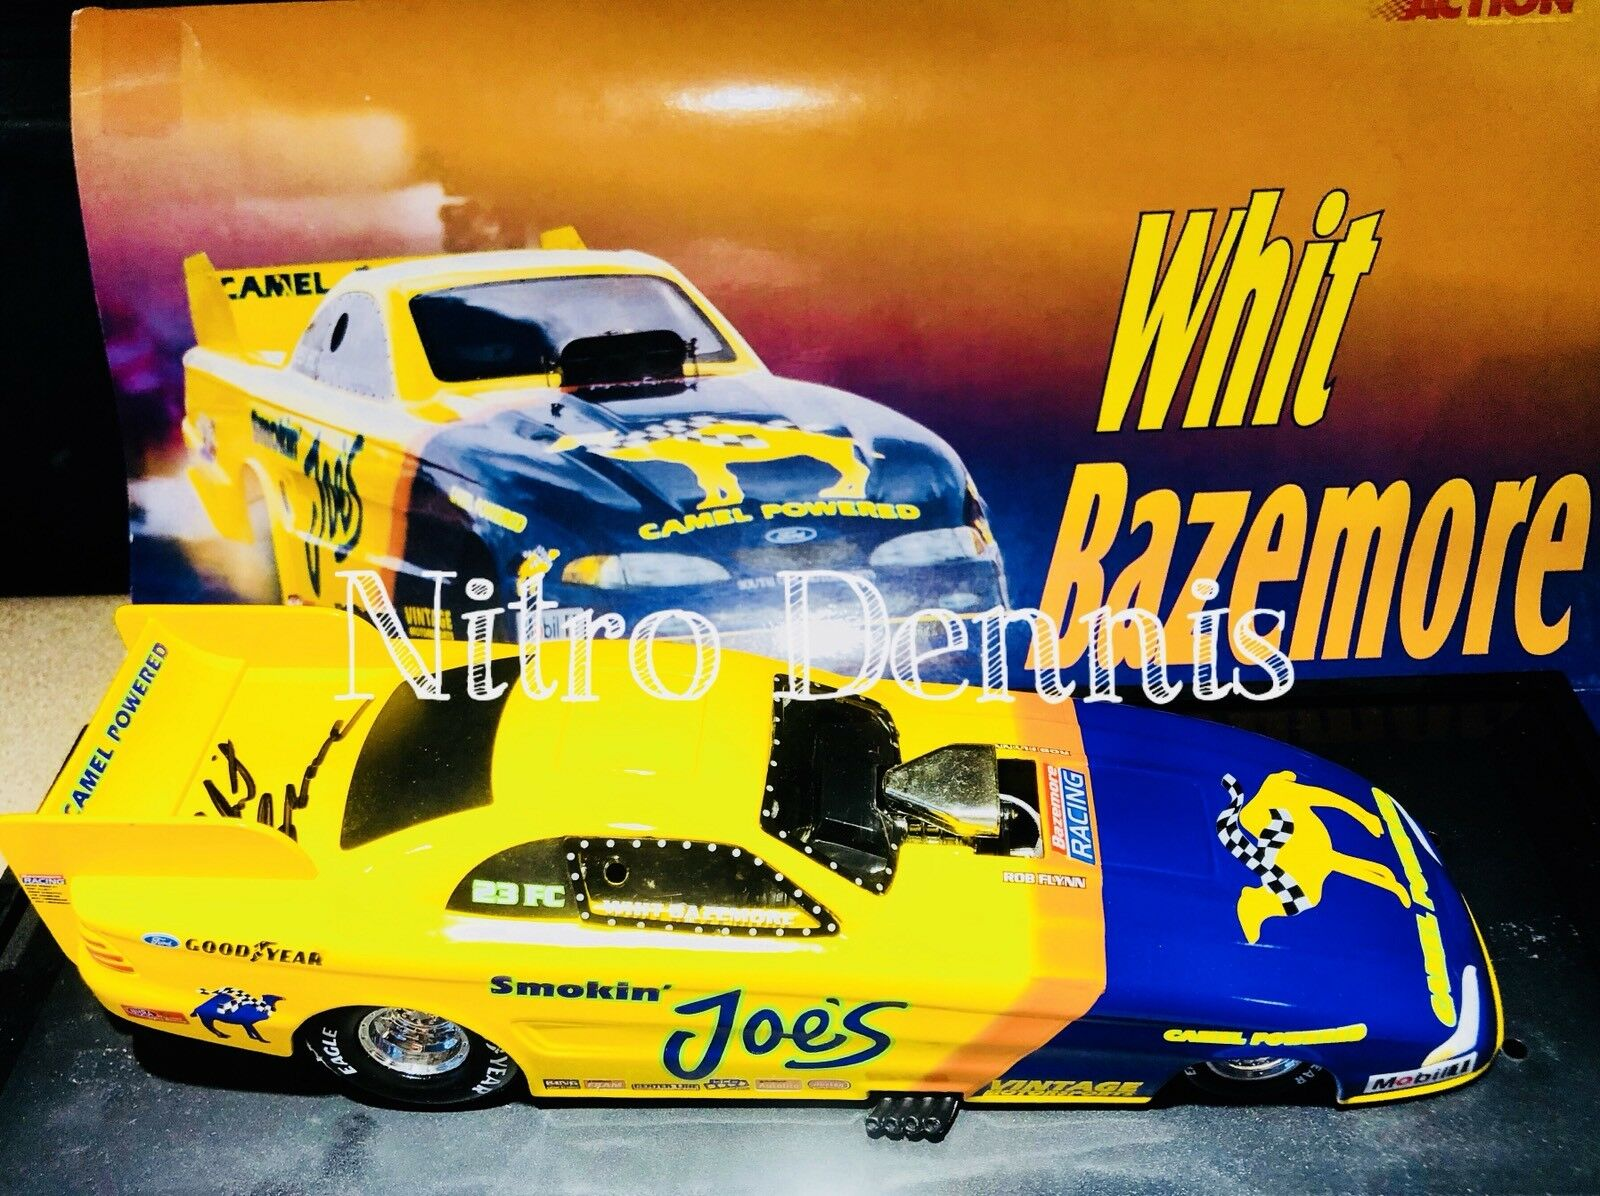 """NHRA Whit Bazemore 1 24 Diecast NITRO Funny Car1996 Action Action Action SMOKIN JOE'S """"Signed"""" 4be95c"""